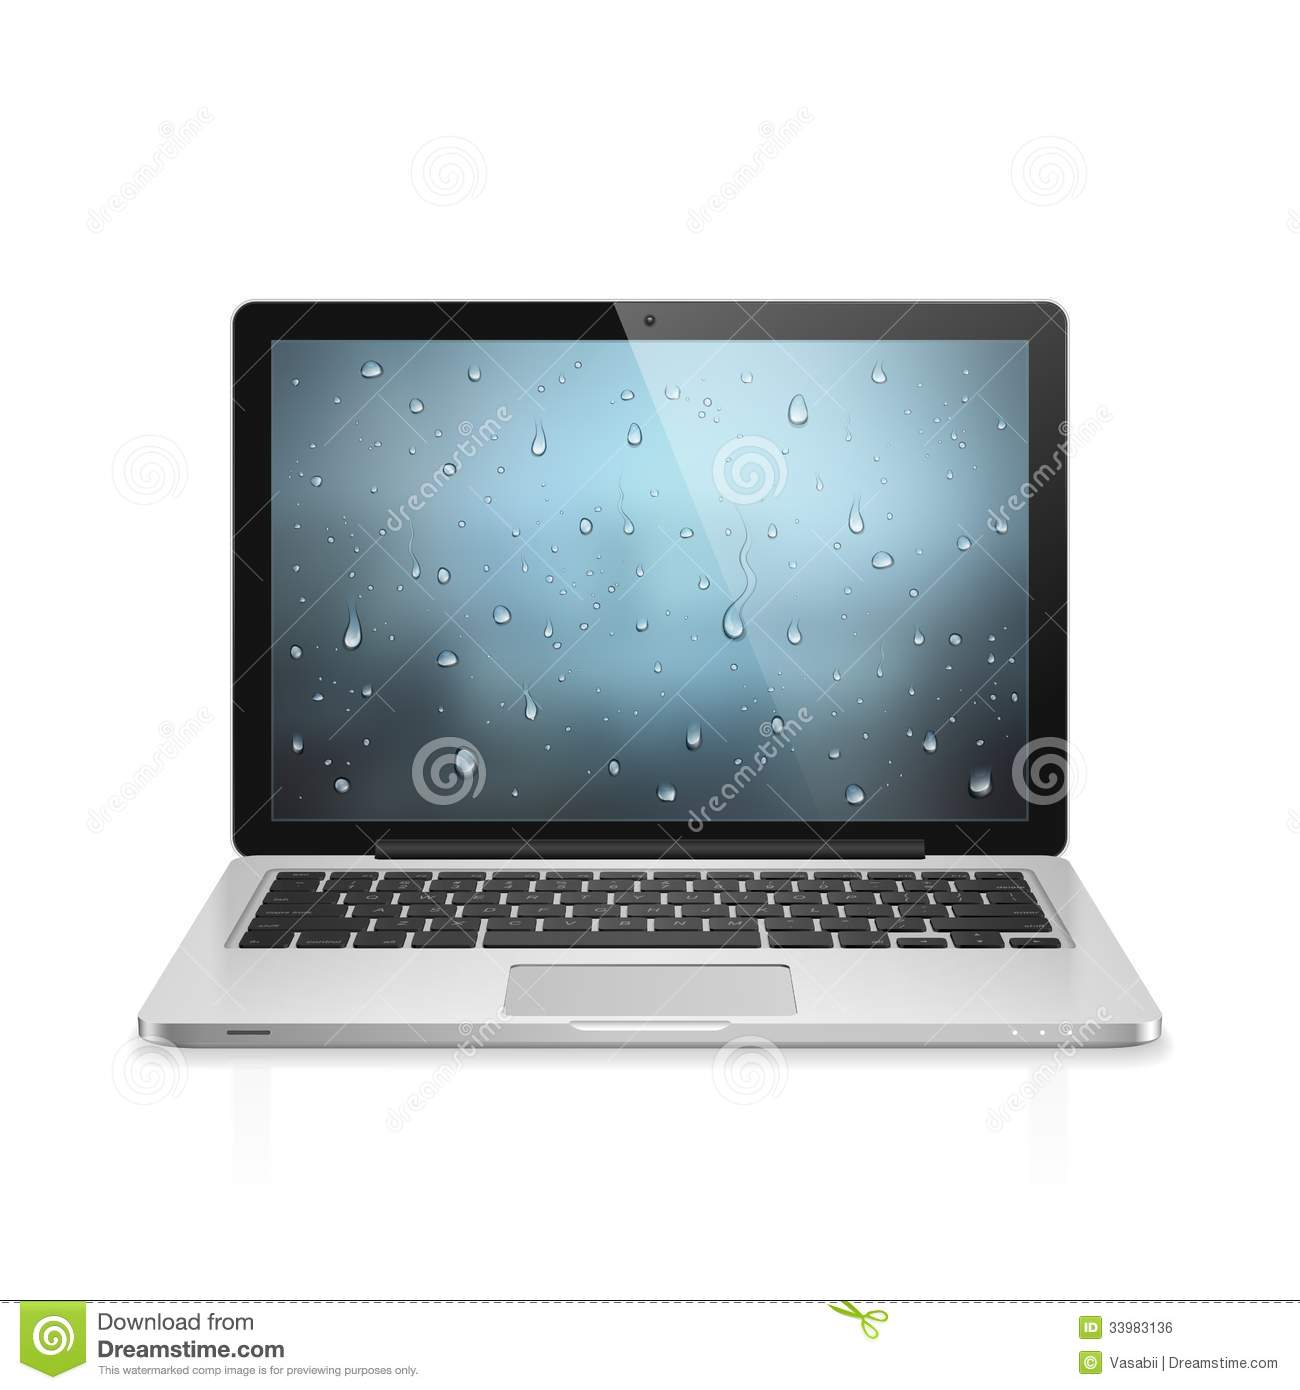 High detailed realistic vector illustration of modern laptop with